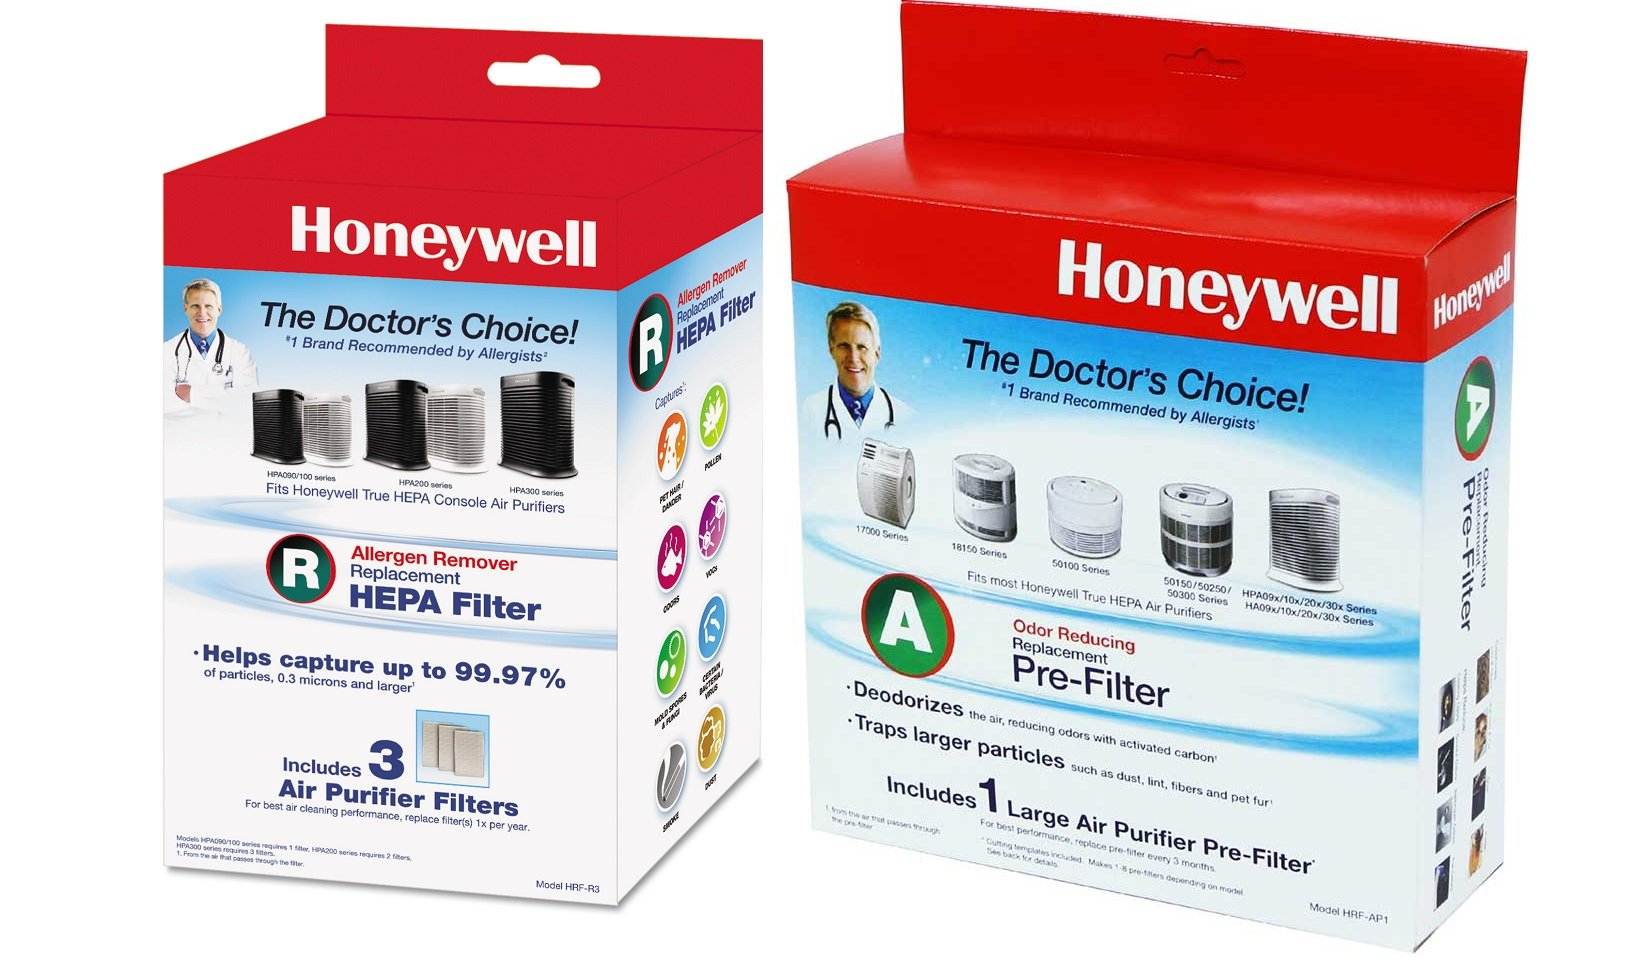 Honeywell HRF-AP1 Filter A Universal Carbon Pre-filter and HRF-R3 Bundle - Made for Honeywell HPA300 Machines